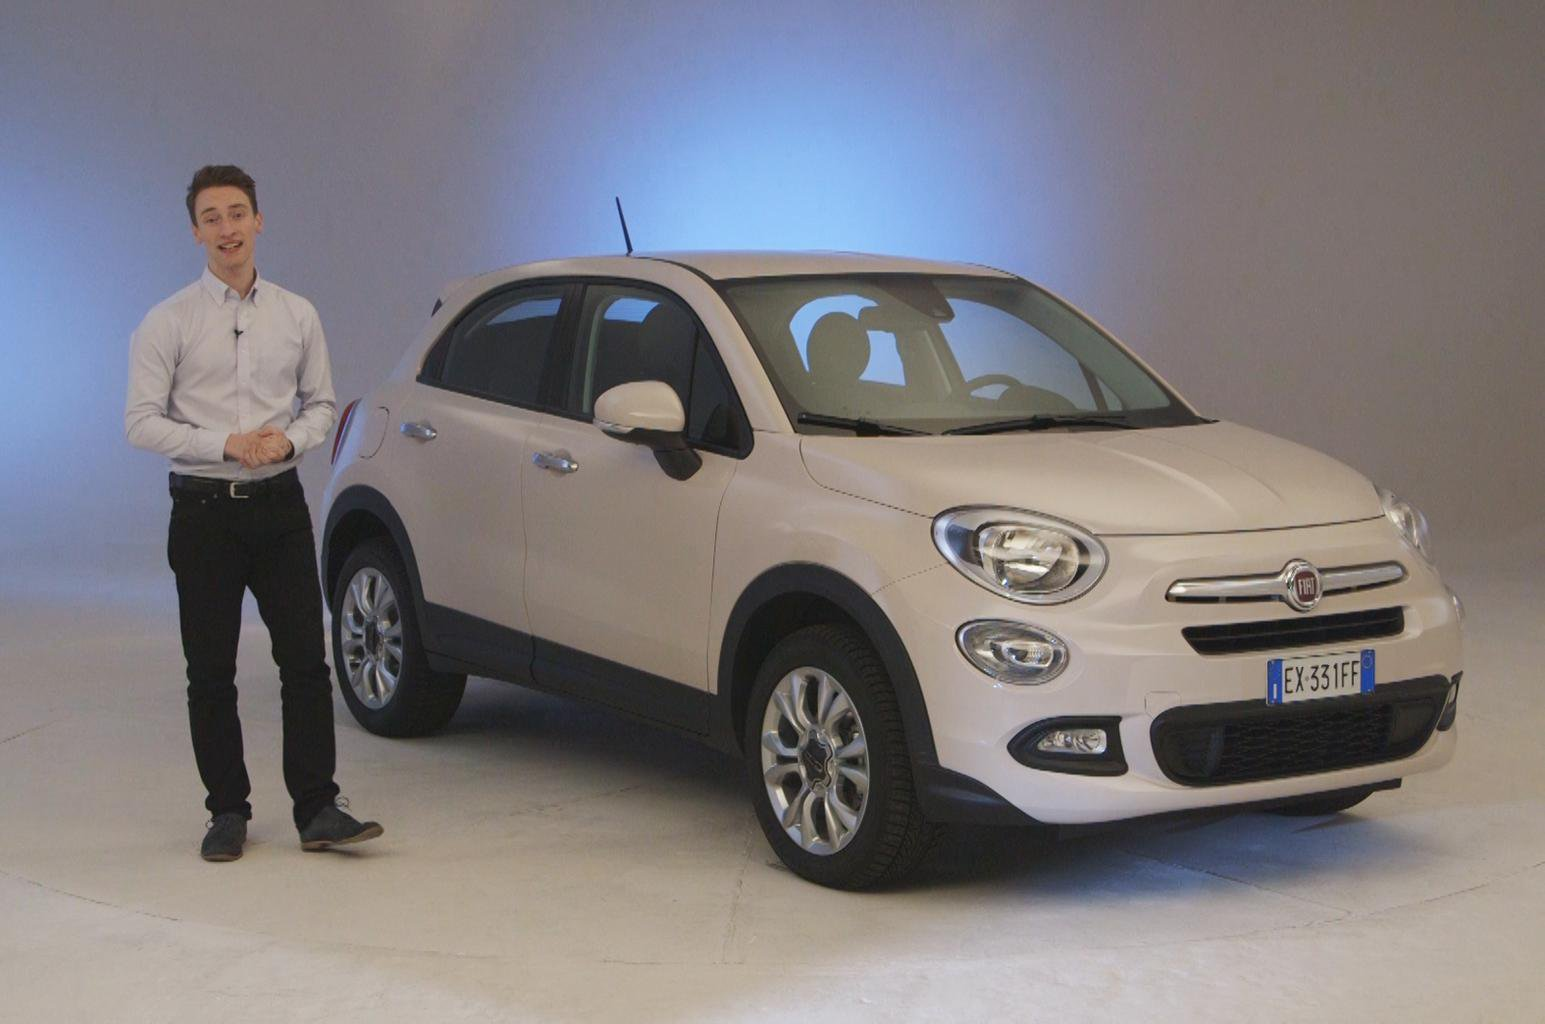 2015 Fiat 500X - pictures, pricing, specs and our video